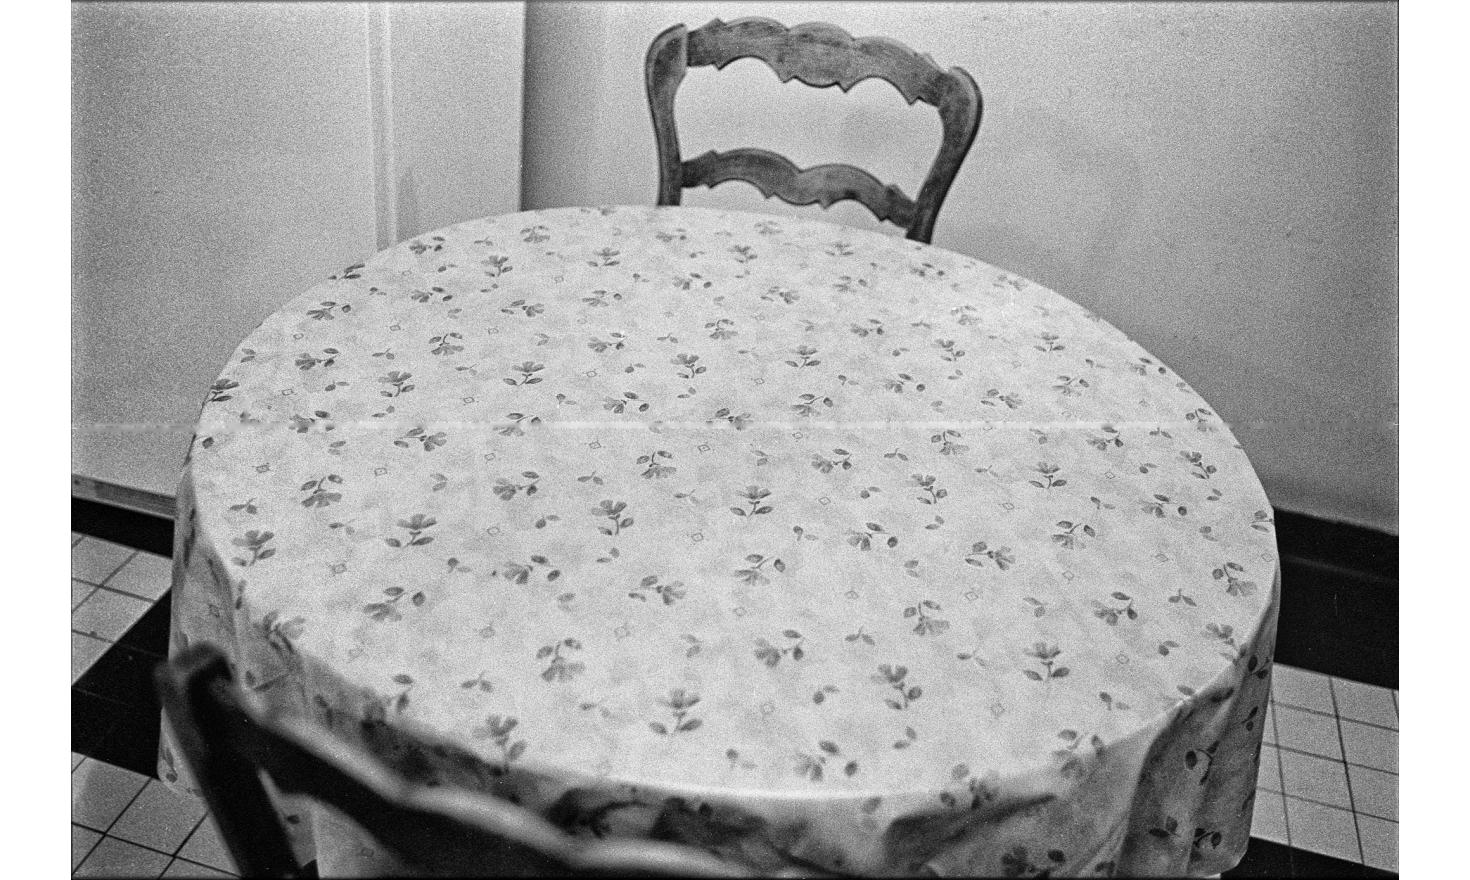 The kitchen table with its oilcloth filled with shamrocks. Igny, January 2003